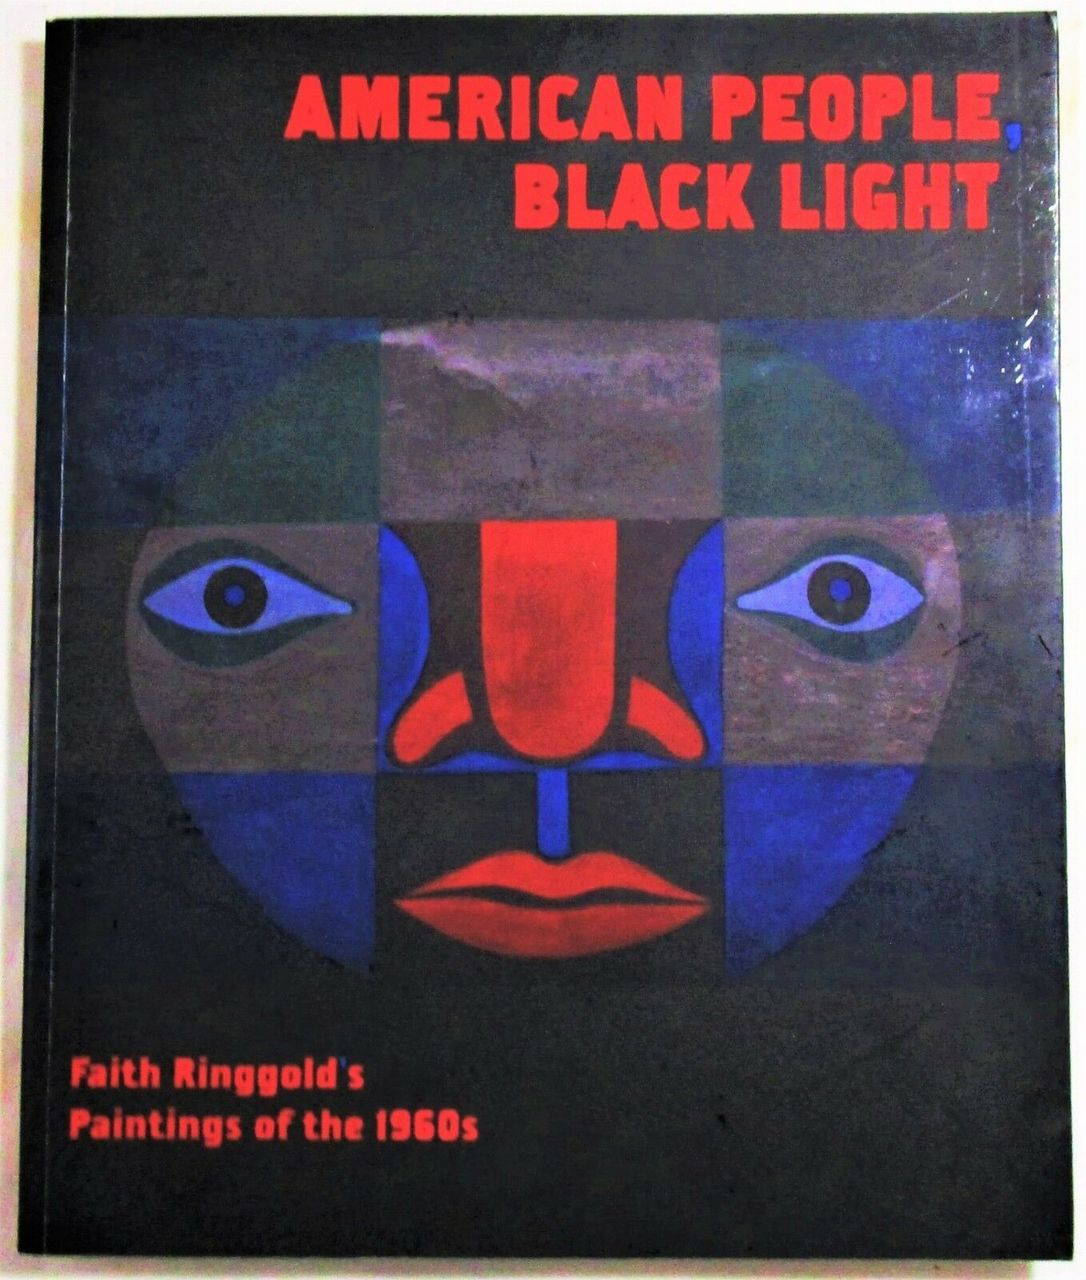 Faith Ringgold's AMERICAN PEOPLE, BLACK LIGHT - 2010 [Signed 1st Ed]